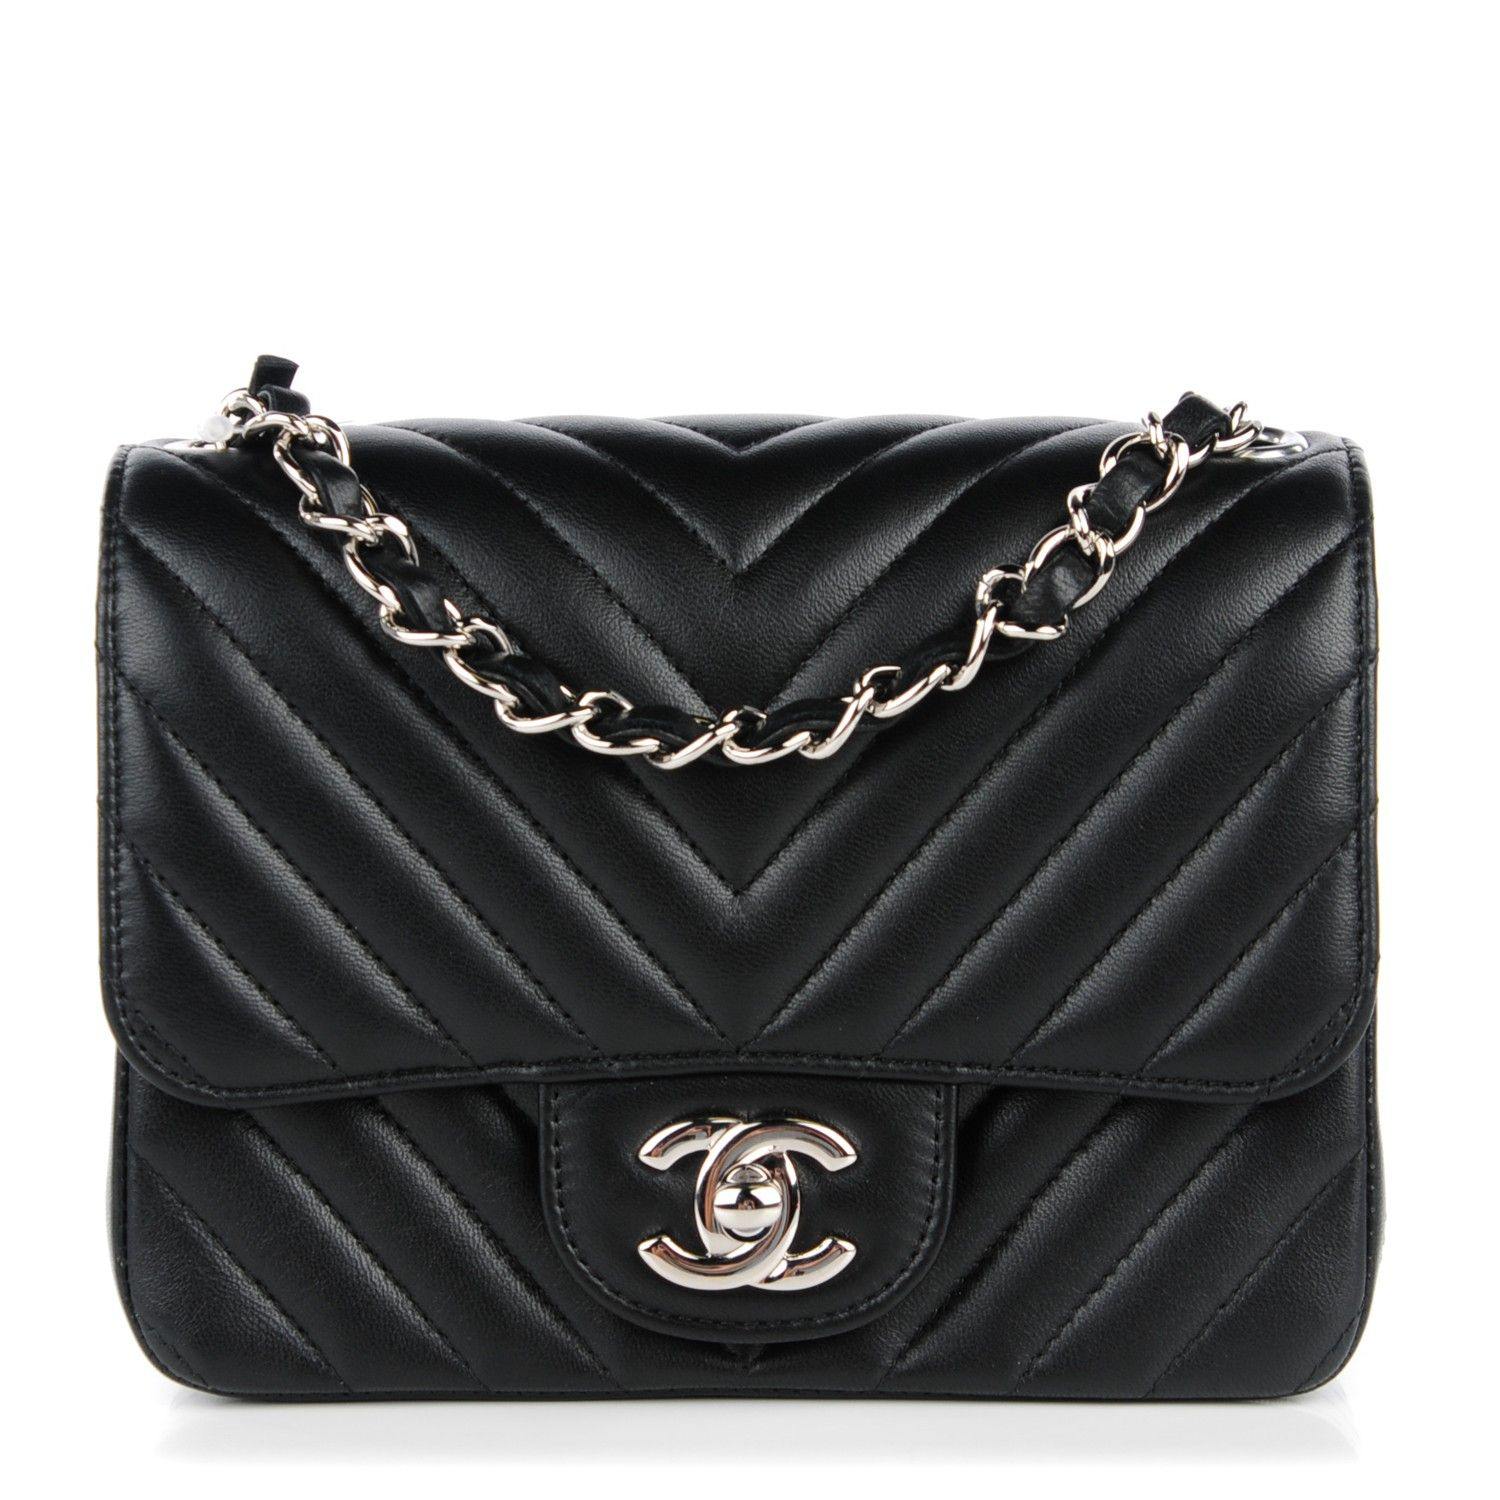 4630860b5ddf7e This is an authentic CHANEL Lambskin Chevron Quilted Mini Square Flap in  Black. The chic little cross body features soft lambskin leather with…